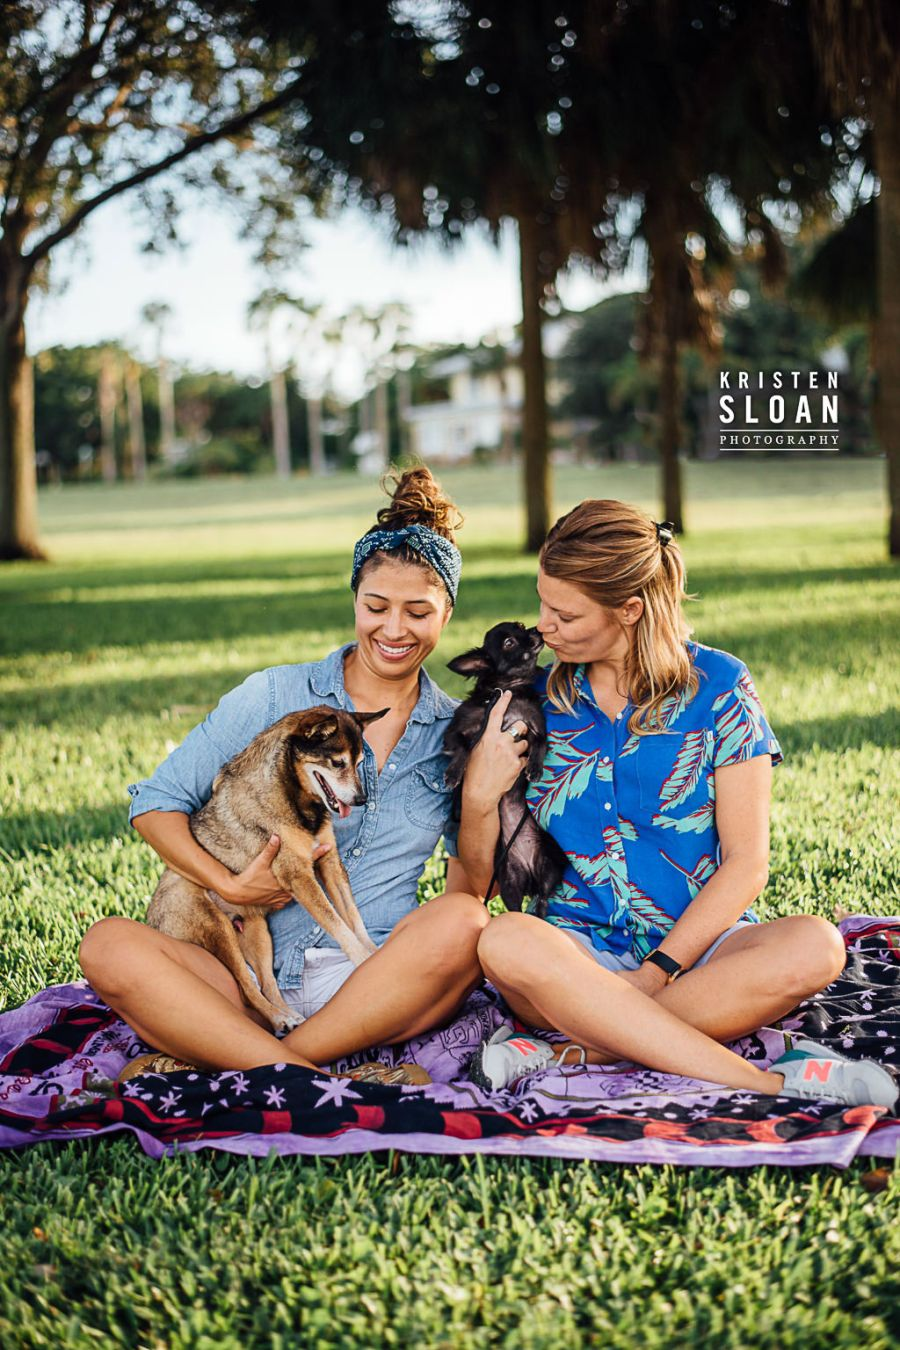 Lassing Park St Pete Florida Couples Pet Portraits, LGBT Couples Engagement, LoveisLove, St Petersburg Florida Portrait Wedding Photographer, GayLove,